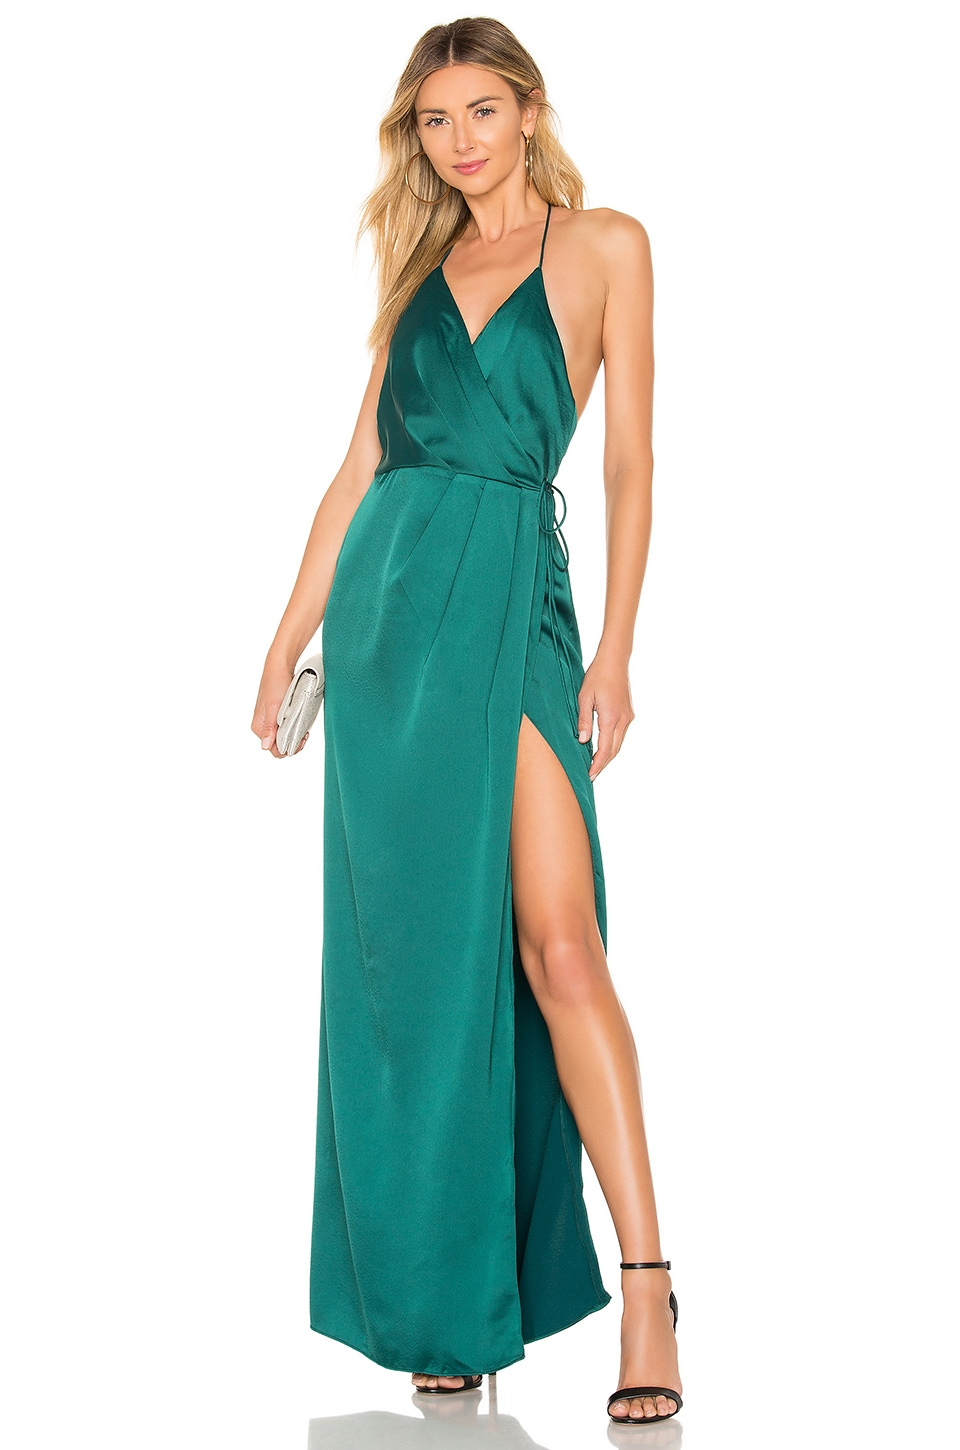 NBD So Anxious Gown in Emerald Green